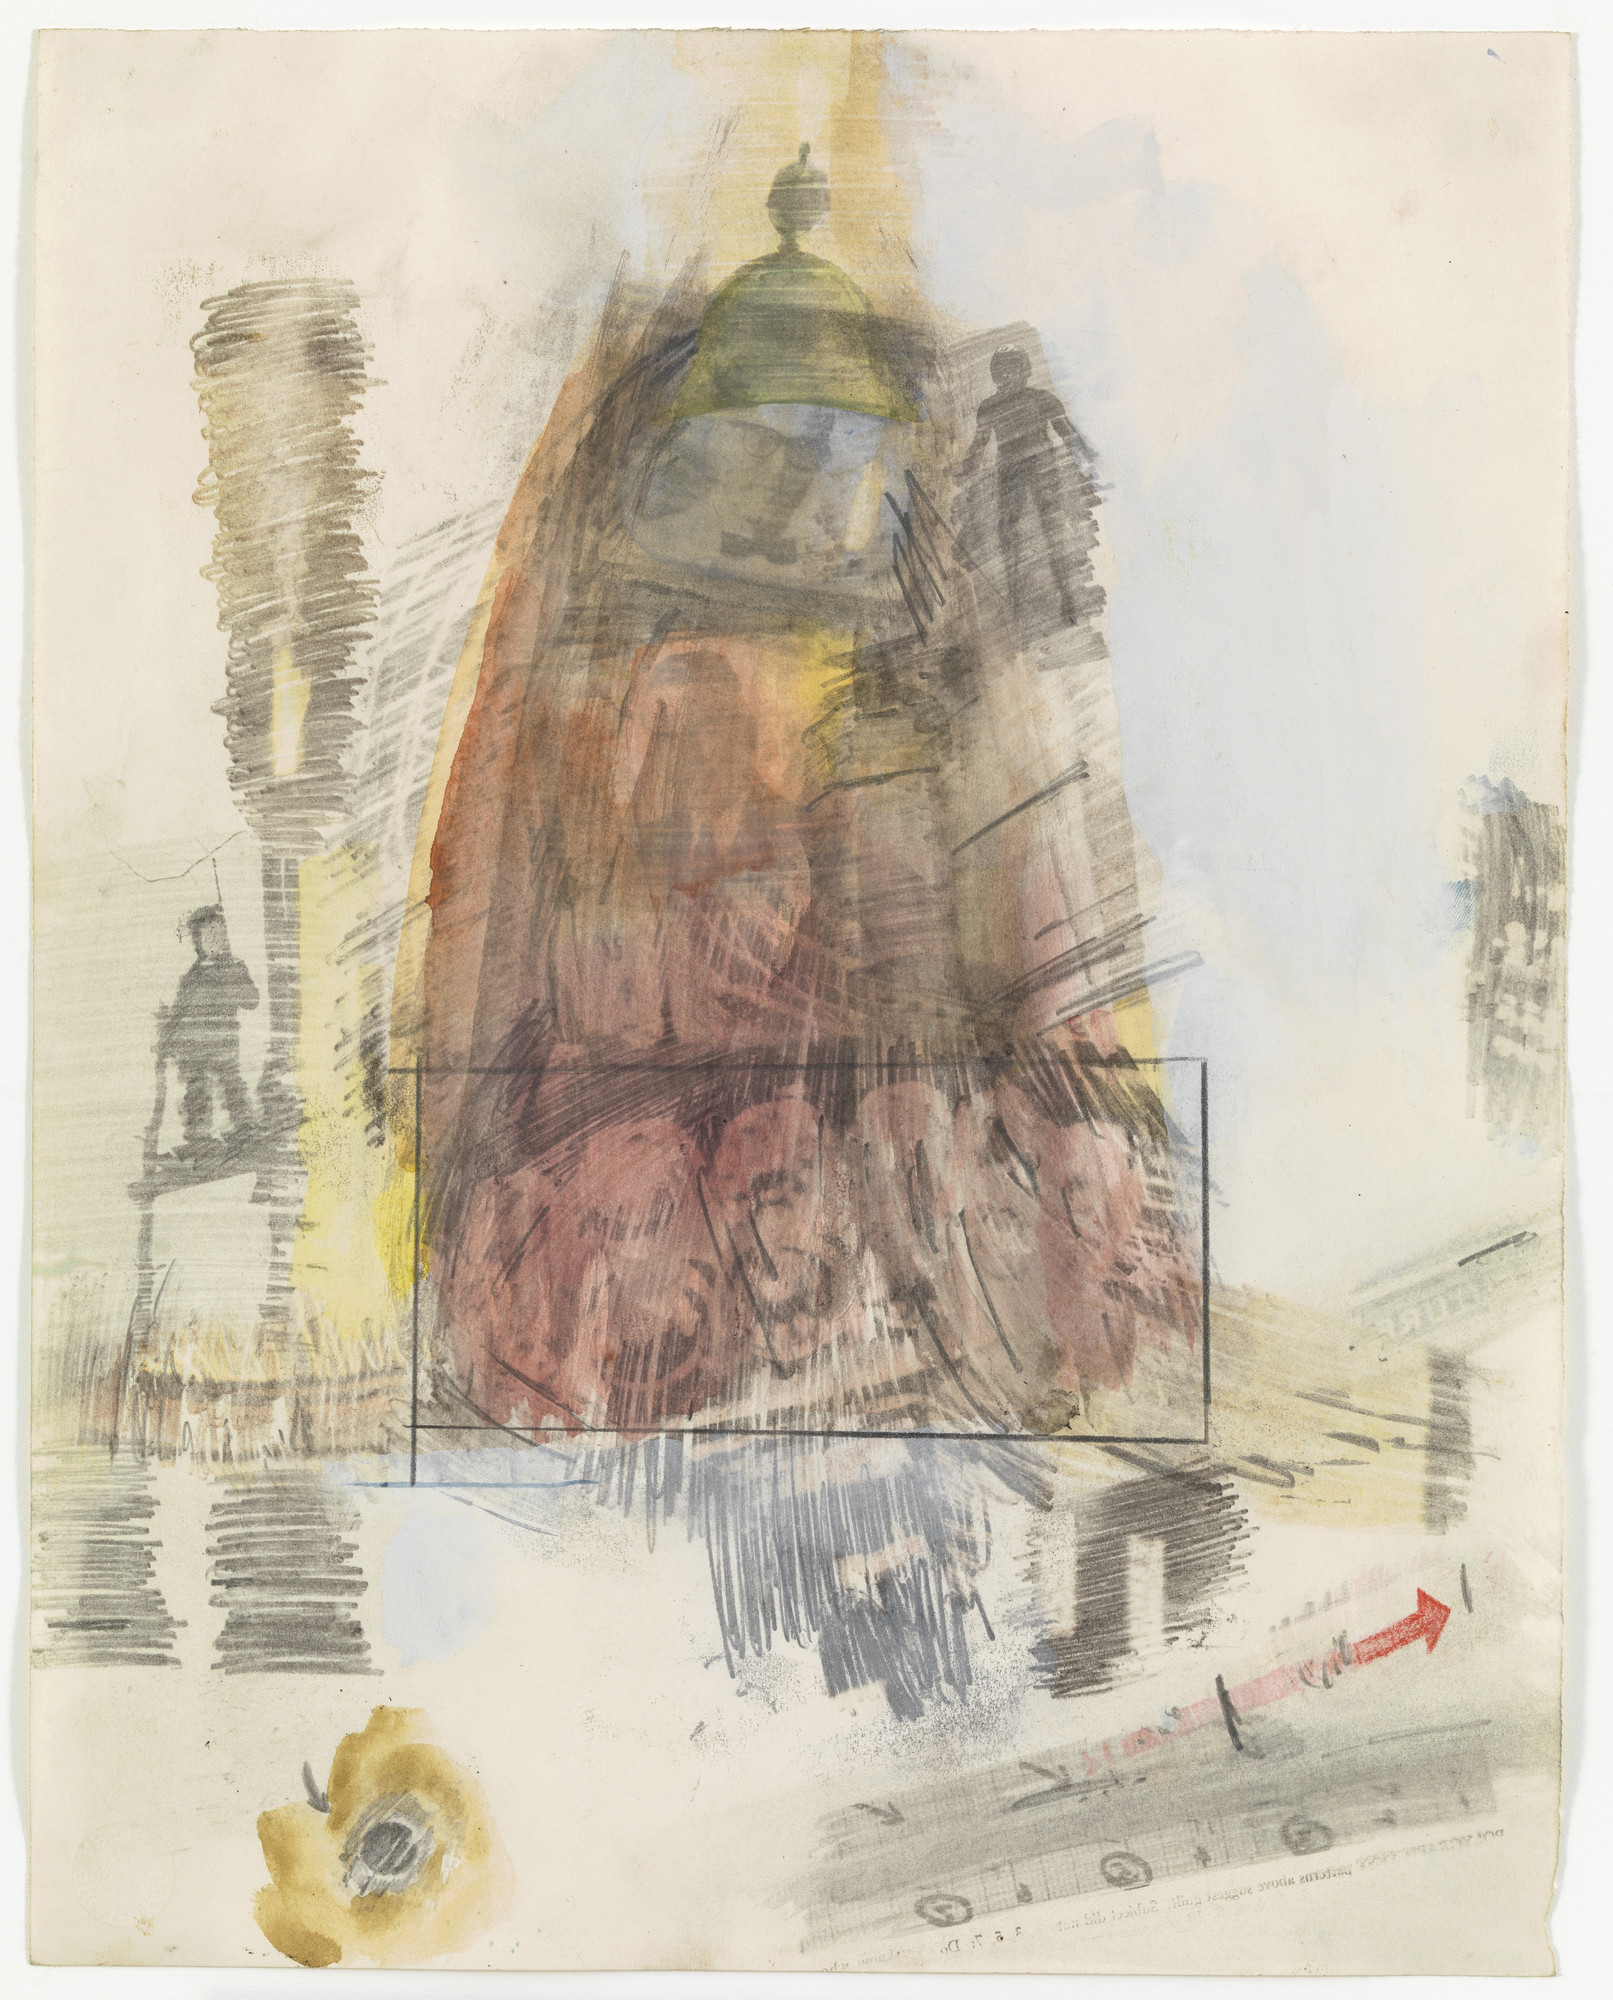 Robert Rauschenberg. Canto X: Circle Six, The Heretics from the series Thirty-Four Illustrations for Dante's Inferno. (1959-60)